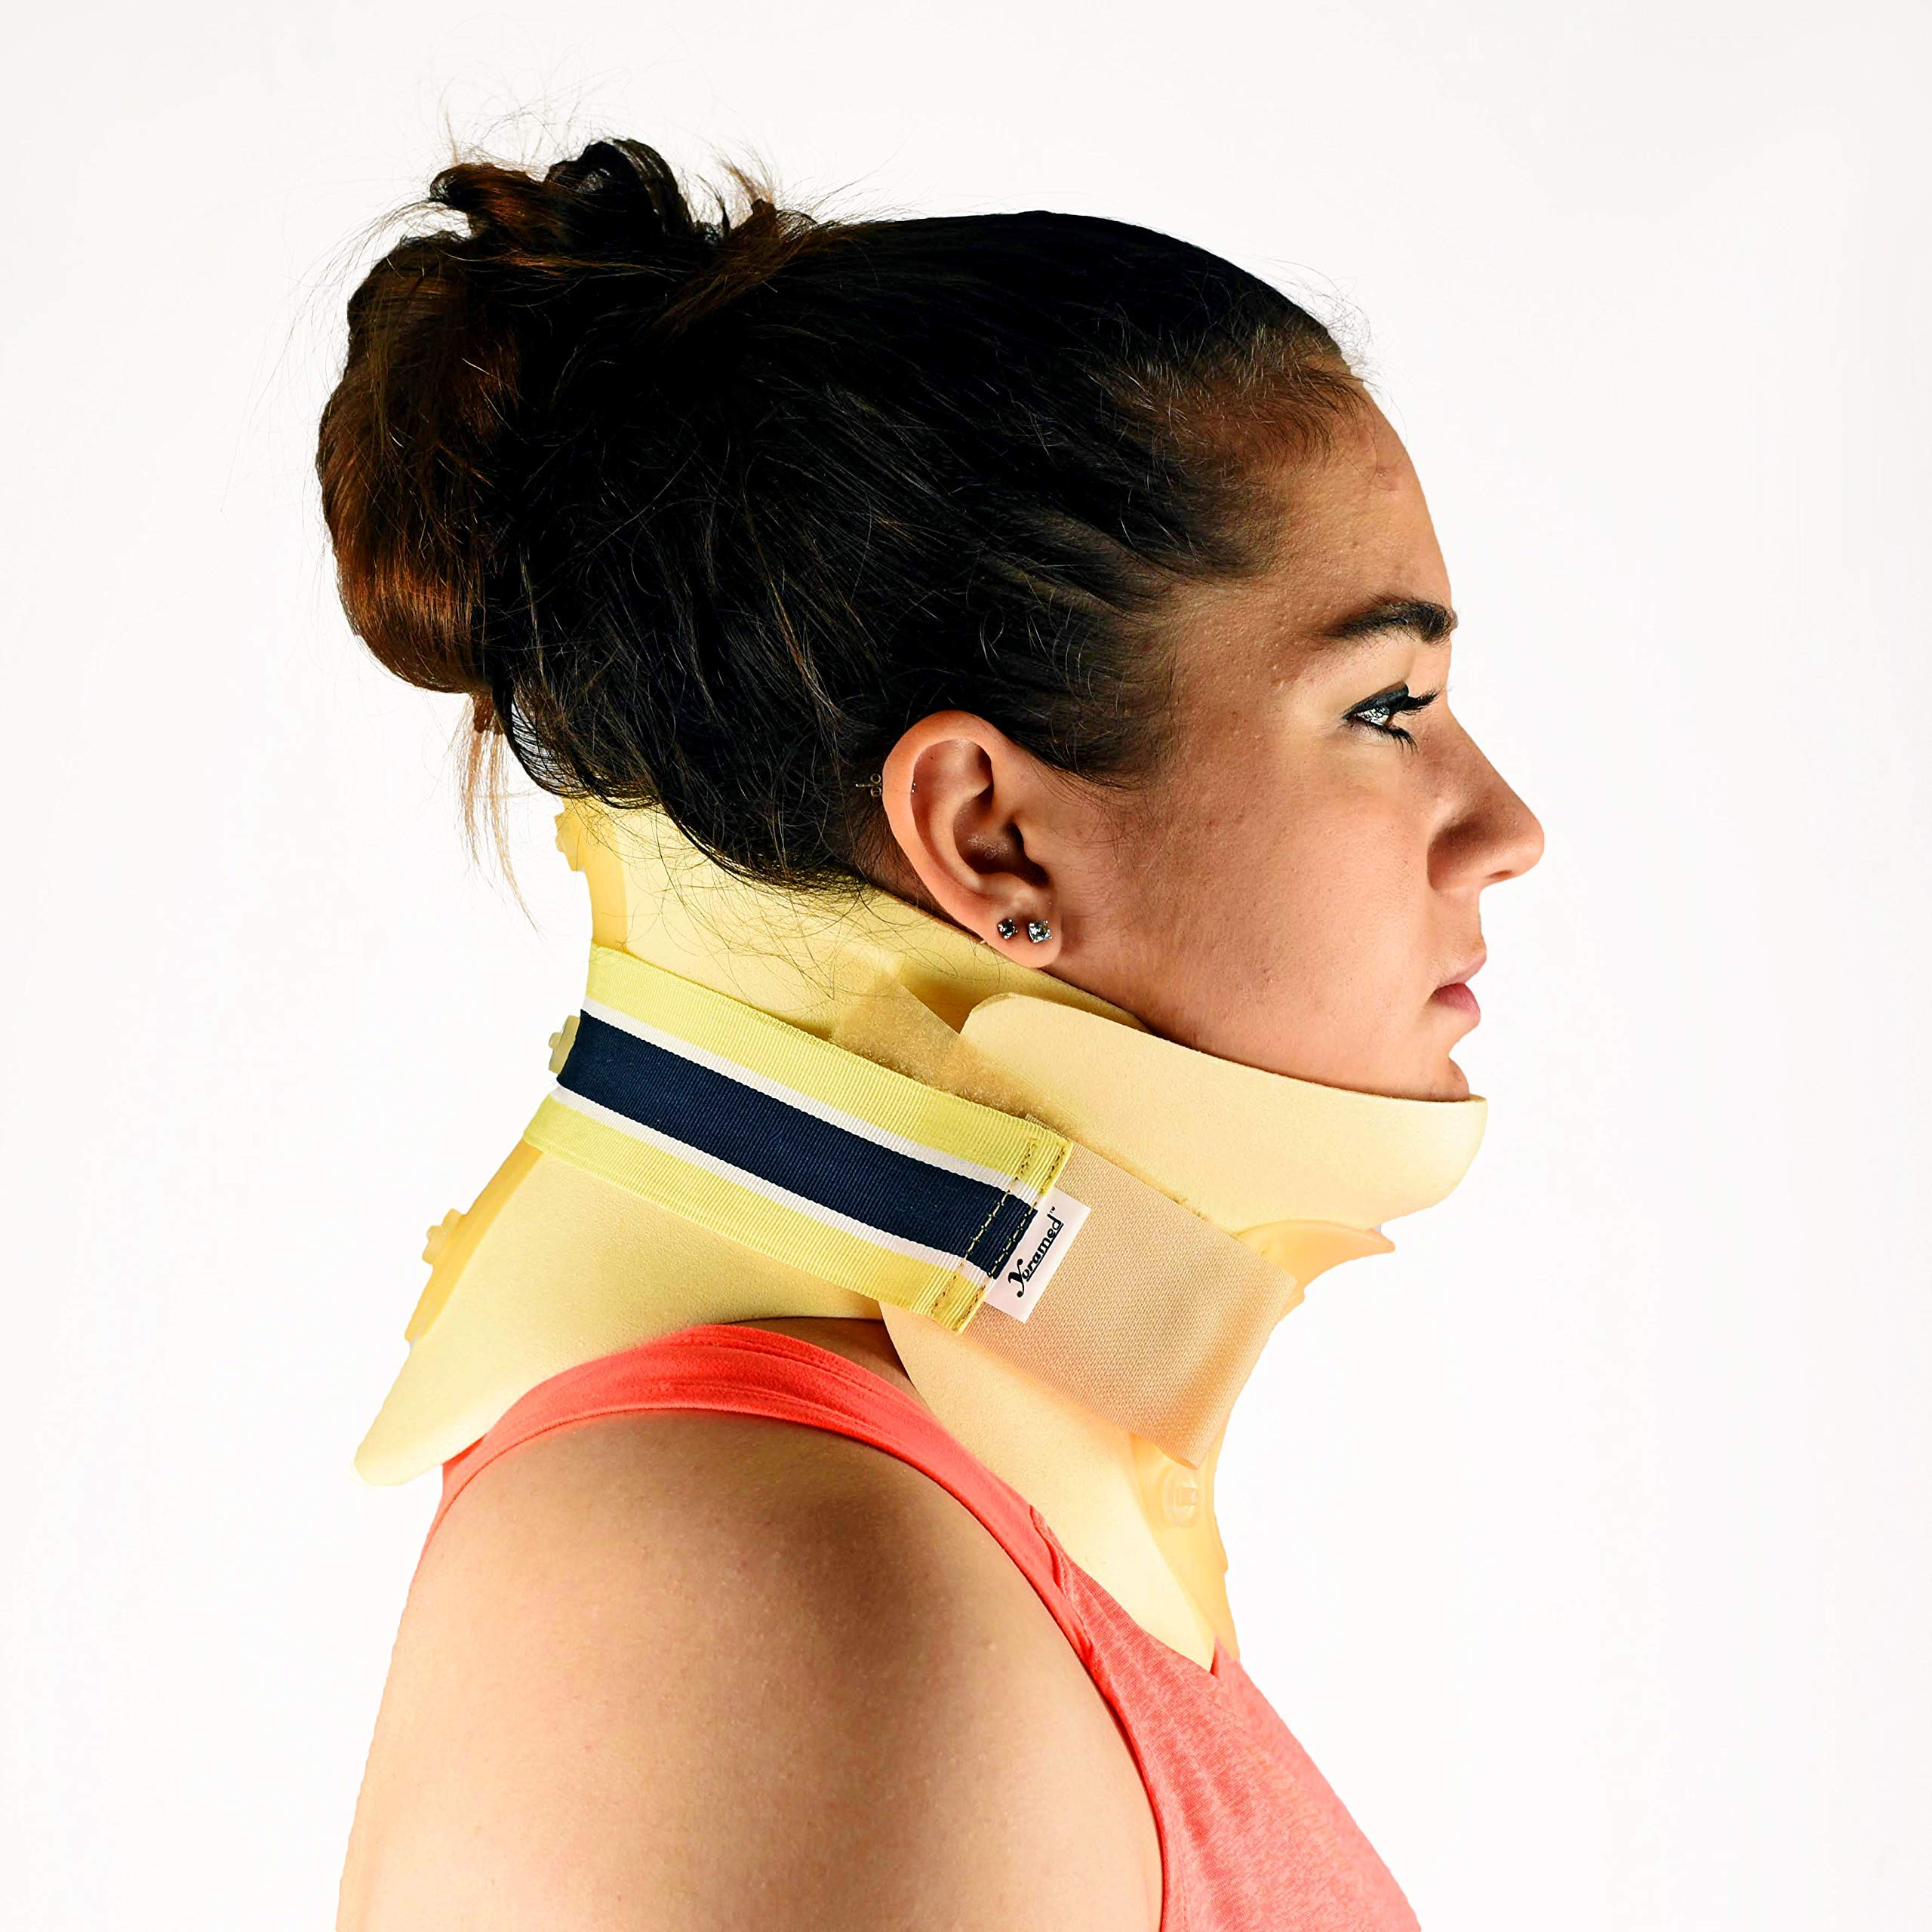 Dr. Franklyn's Cervical Collar Stiff Neck Pain Brace - Universal Waterproof Immobilizer Spine Pain & Pressure Relief - One Size Fits All by Dr. Franklyn's